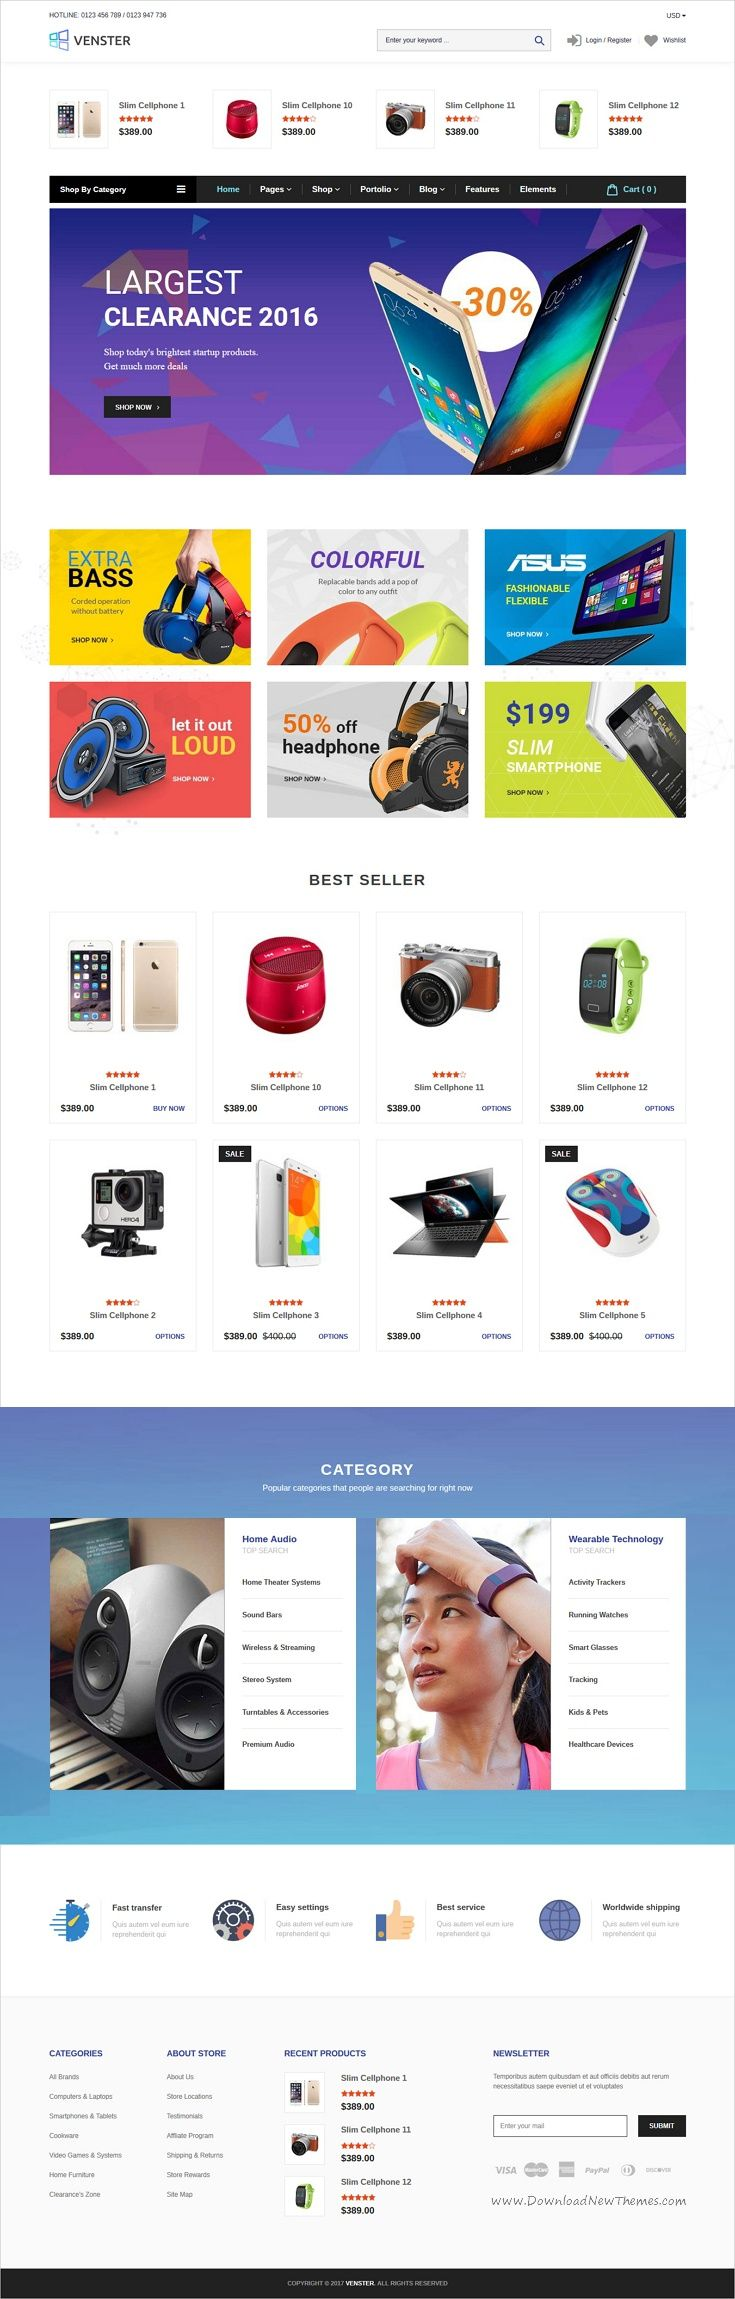 Venster is a wonderful responsive #Shopify theme for stunning #electronics store #eCommerce websites with drag and drop page builder download now➩ https://themeforest.net/item/venster-computer-shopify-theme-sections-page-builder-for-digital-electronics-hightech-store/19433418?ref=Datasata